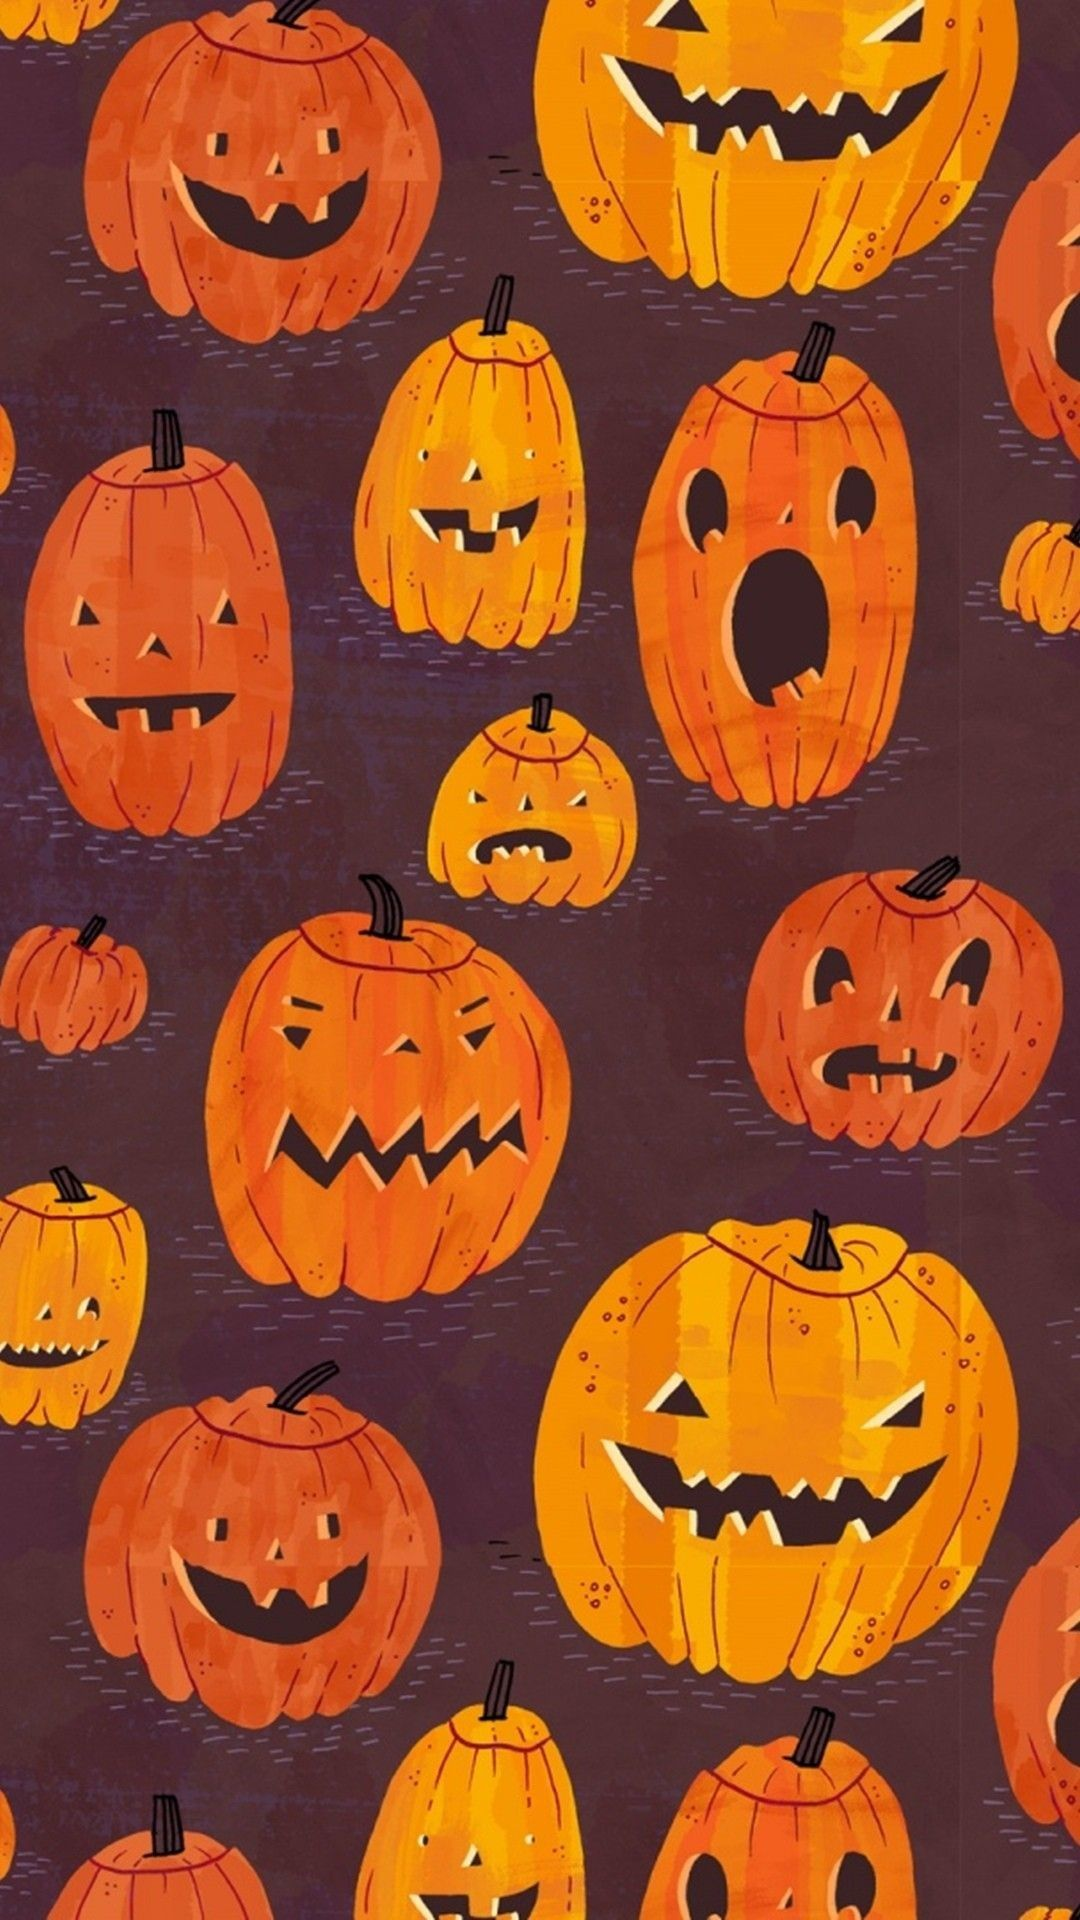 Aesthetic Halloween Wallpaper Hd Pumpkin Wallpaper Halloween Wallpaper Iphone Retro Halloween